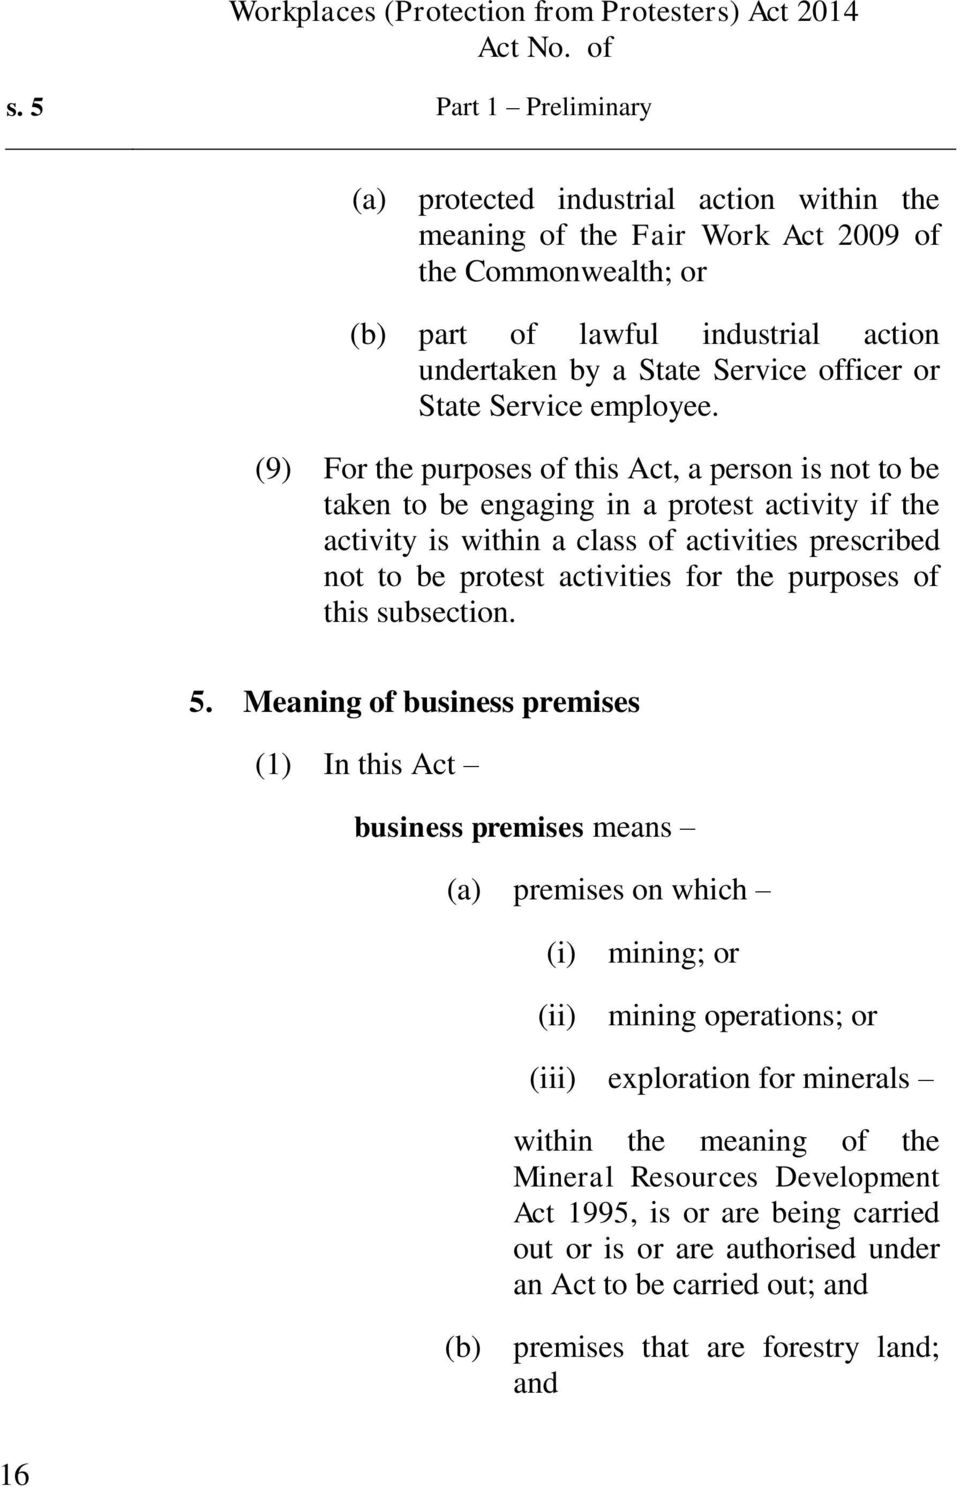 (9) For the purposes of this Act, a person is not to be taken to be engaging in a protest activity if the activity is within a class of activities prescribed not to be protest activities for the